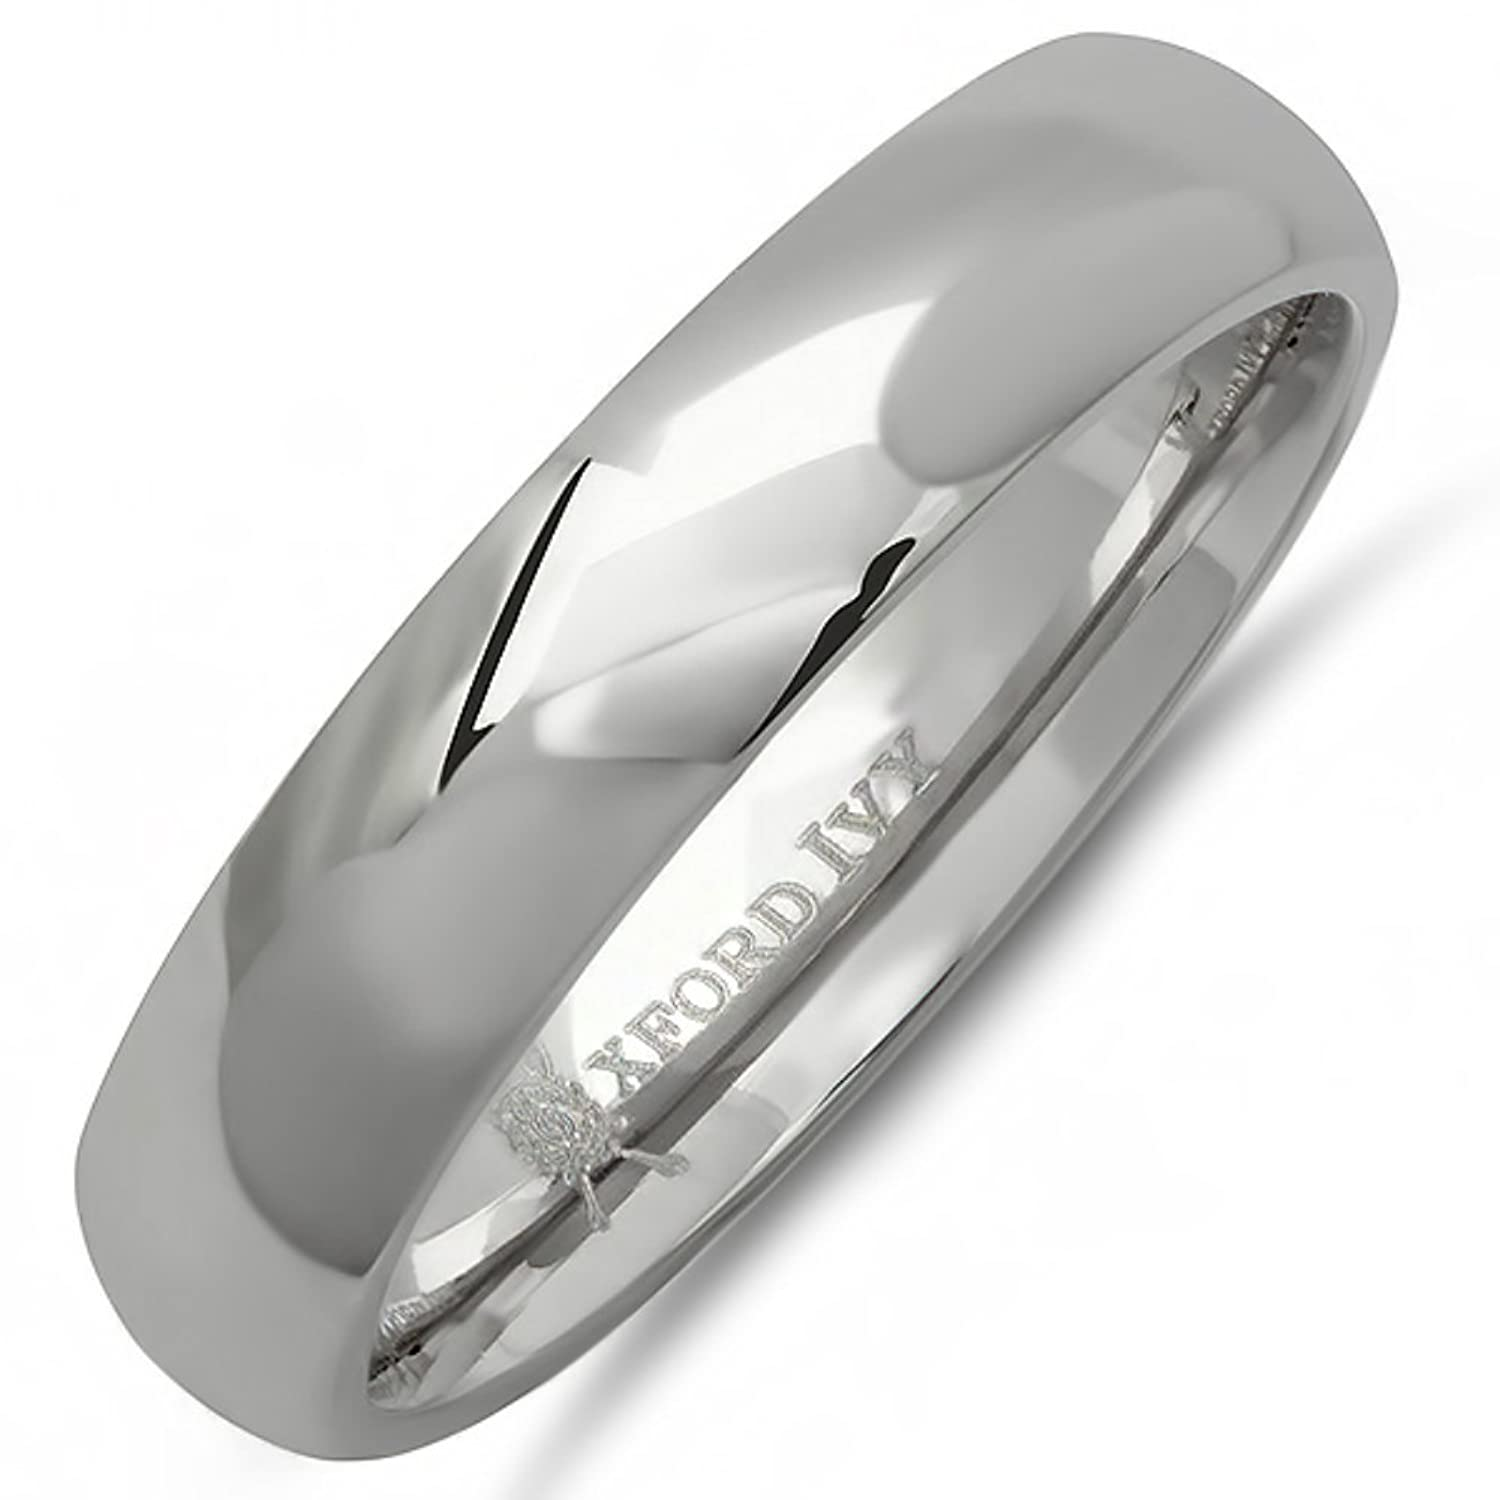 Oxford Ivy 5mm Mens Plain Comfort Fit Titanium Wedding Band Available Ring Sizes 7 12 1 2